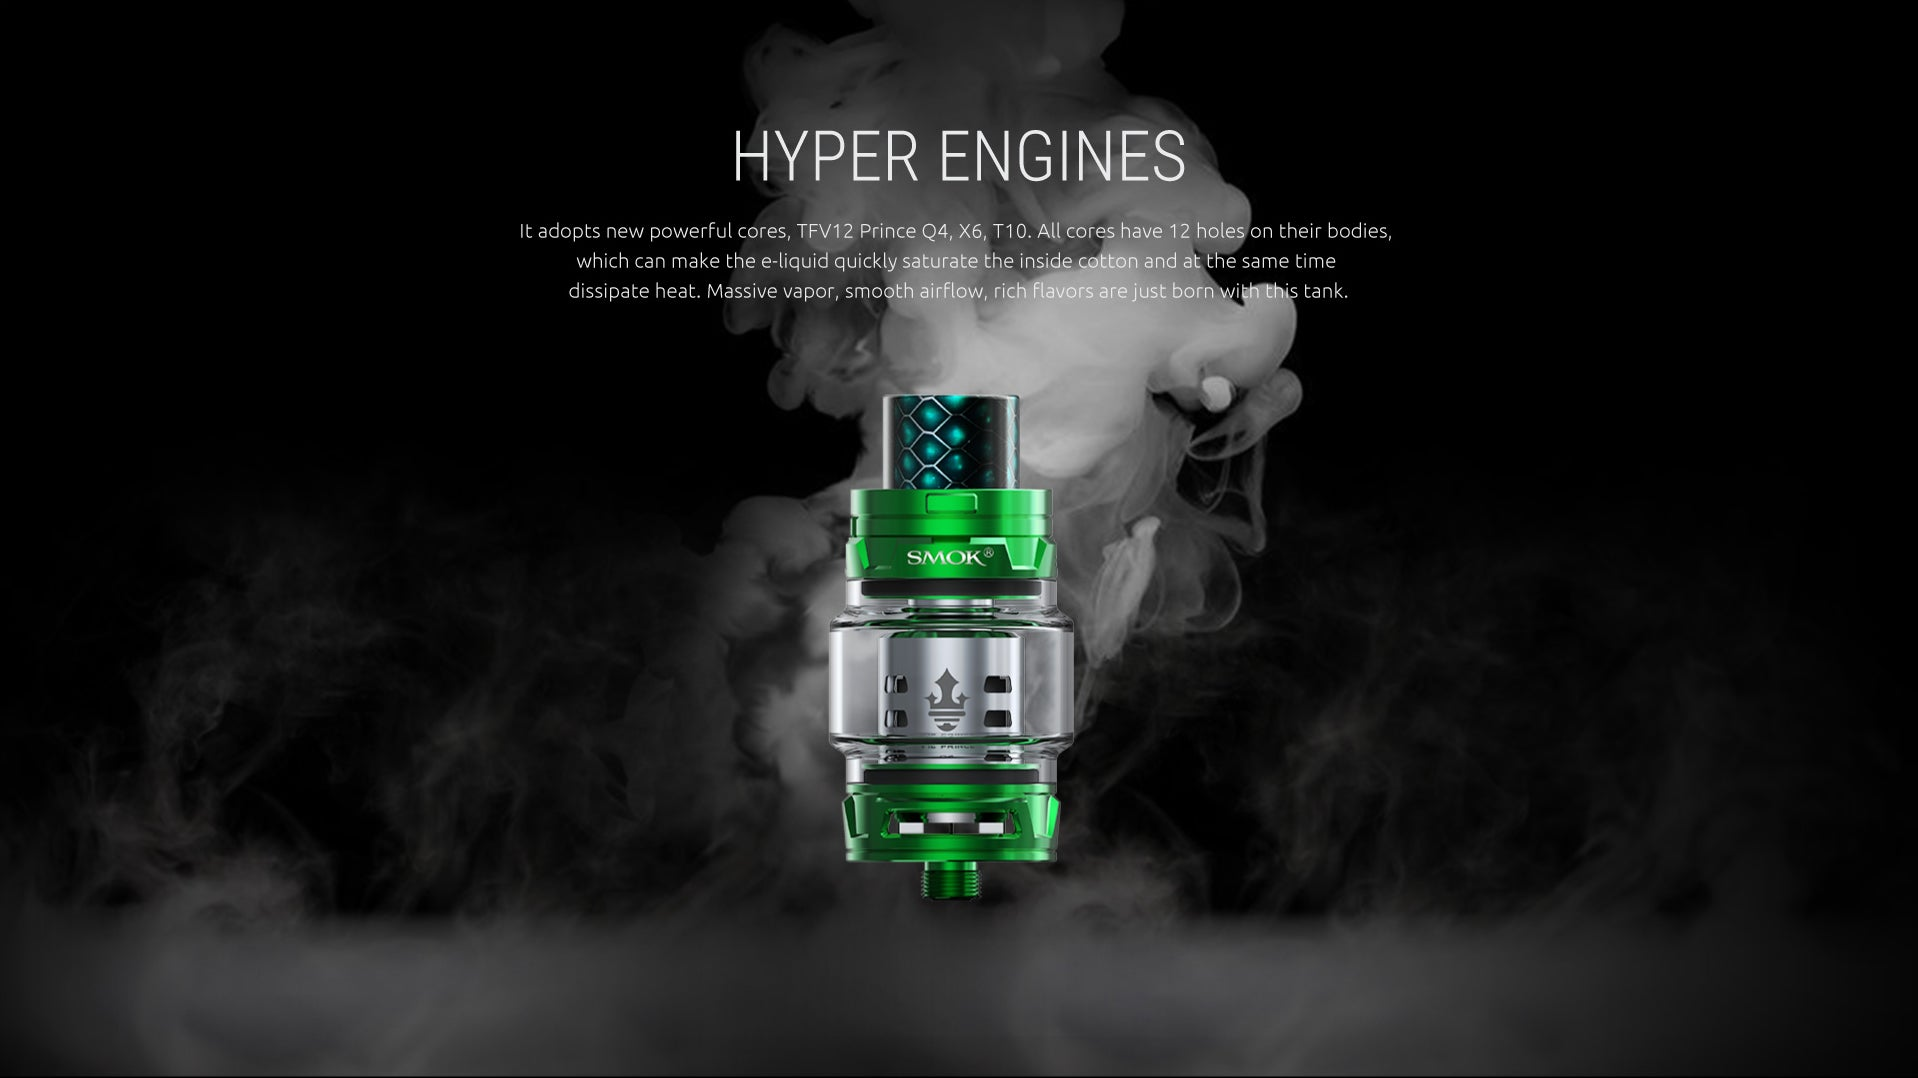 SMOK TFV12 *PRINCE* CLOUD BEAST PRINCE EXTENDED TUBE CLEAROMIZER SUB-OHM TANK